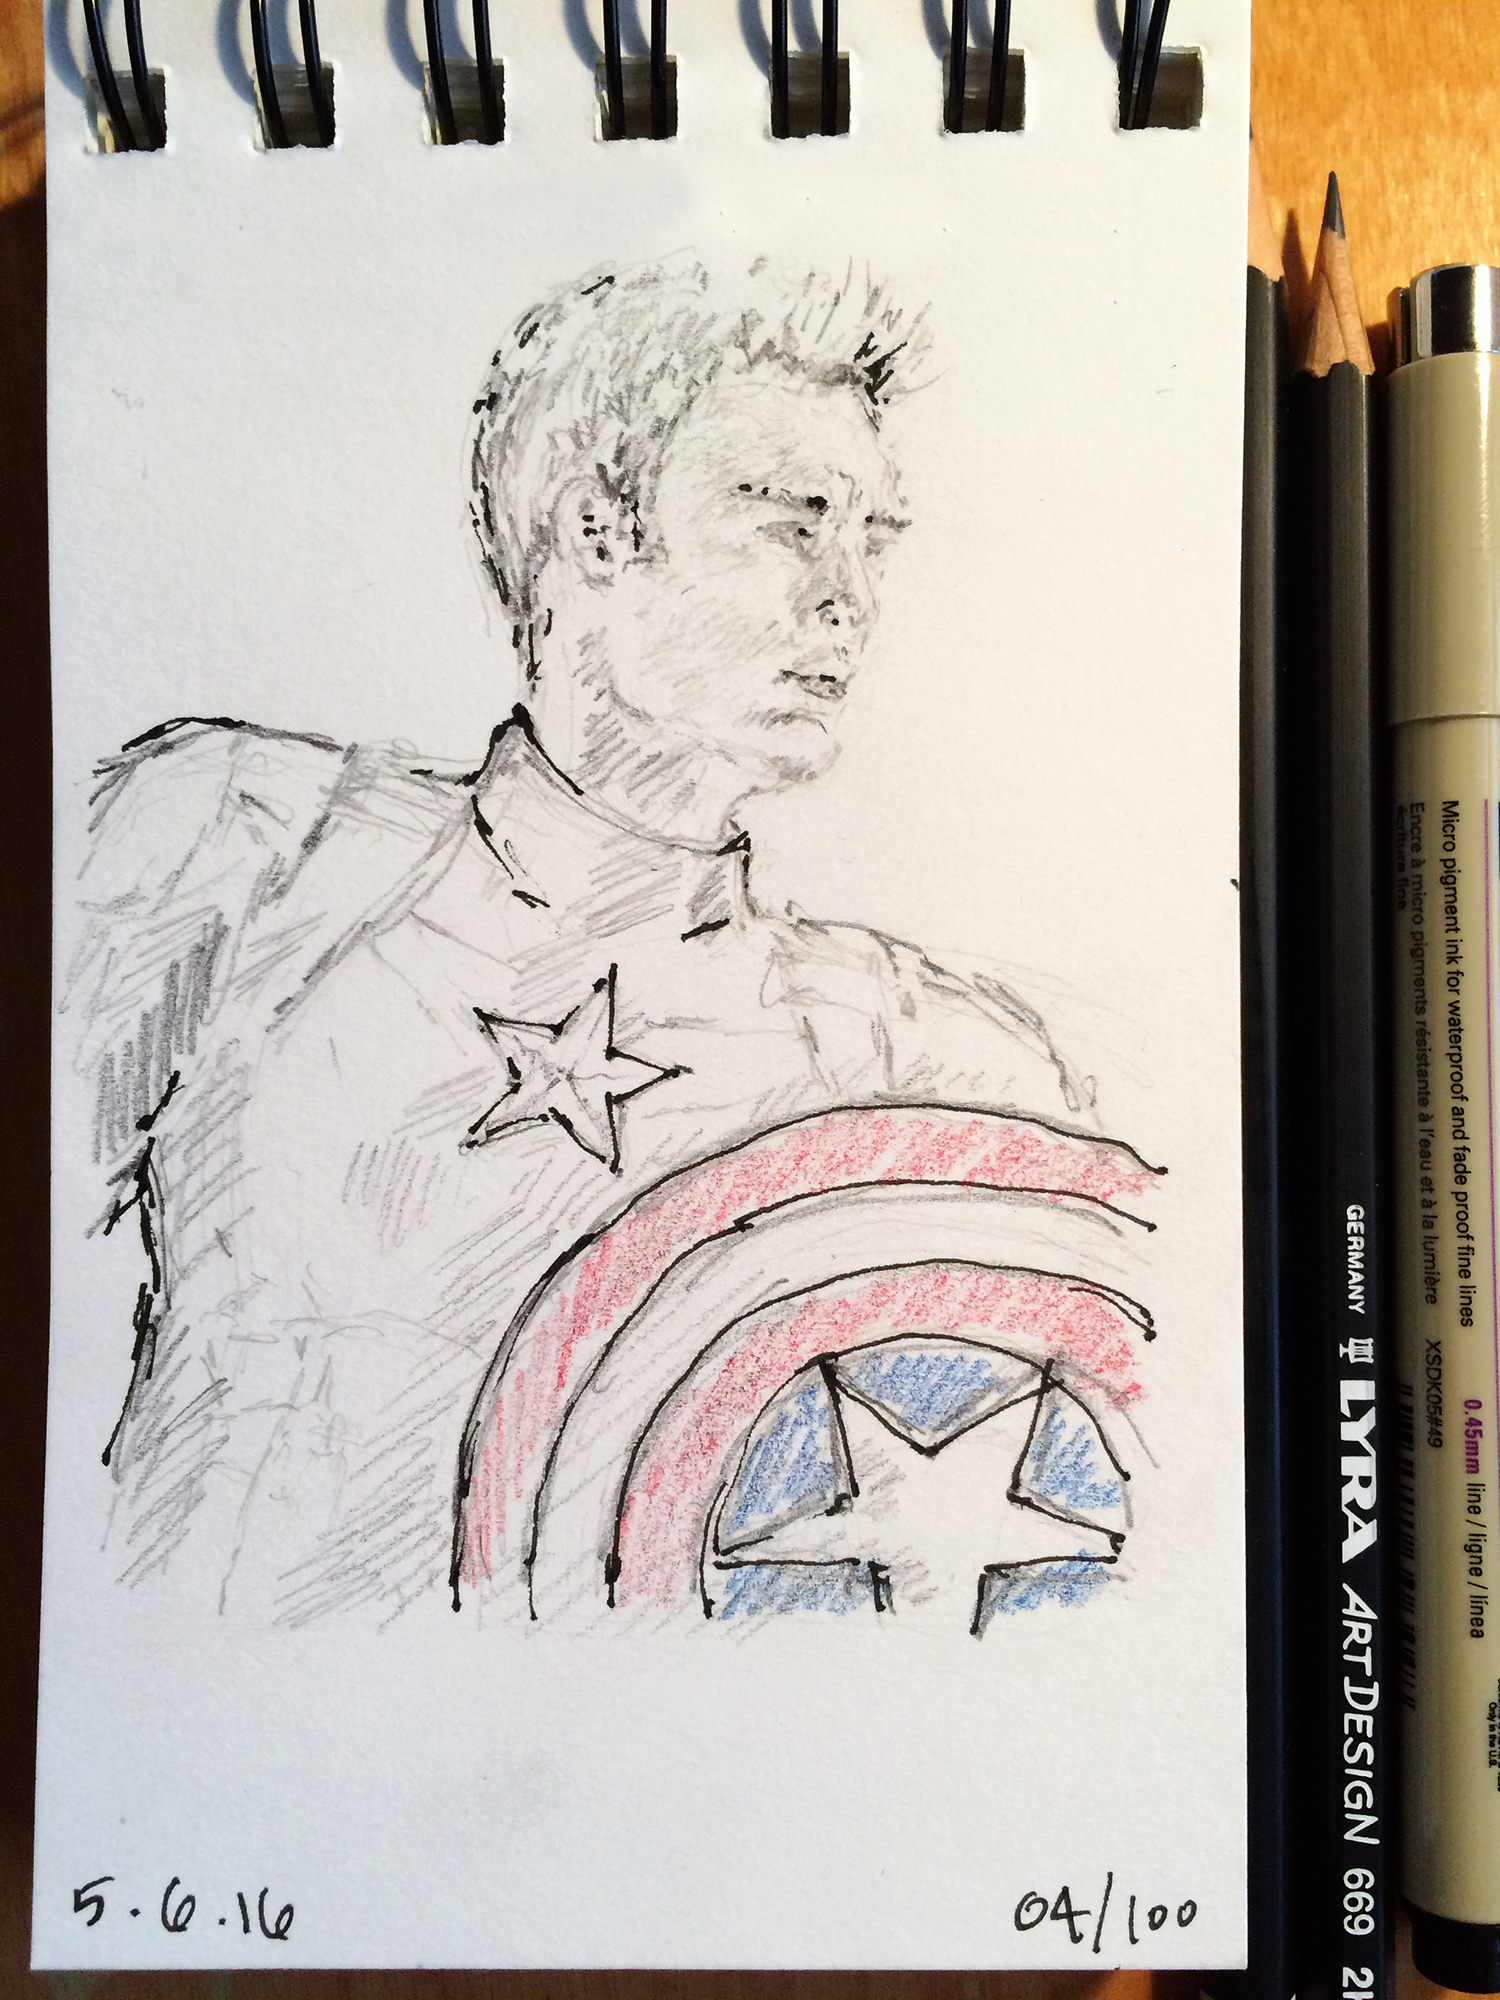 pencil and ink sketch, Chris Evans as Captain America, by Jennifer Koskinen